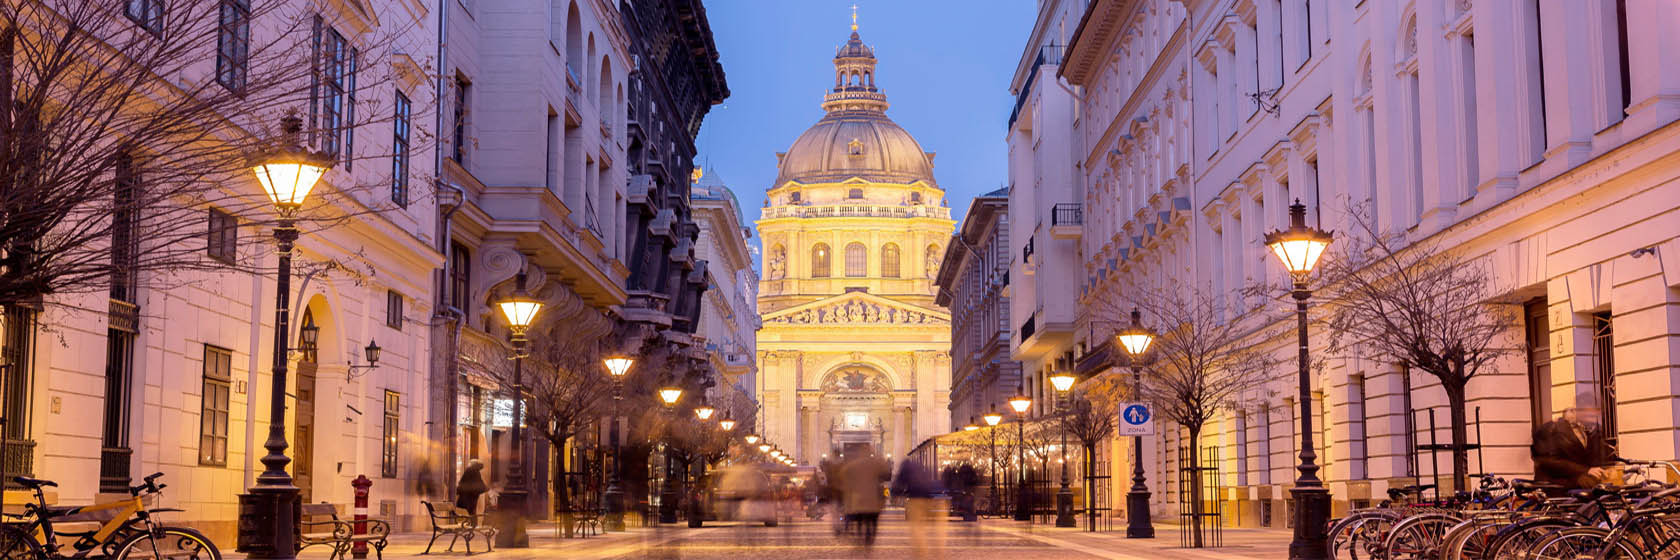 a-tale-of-three-cities-9-days-with-a-and-k-prague-cienna-budaest-cathedral